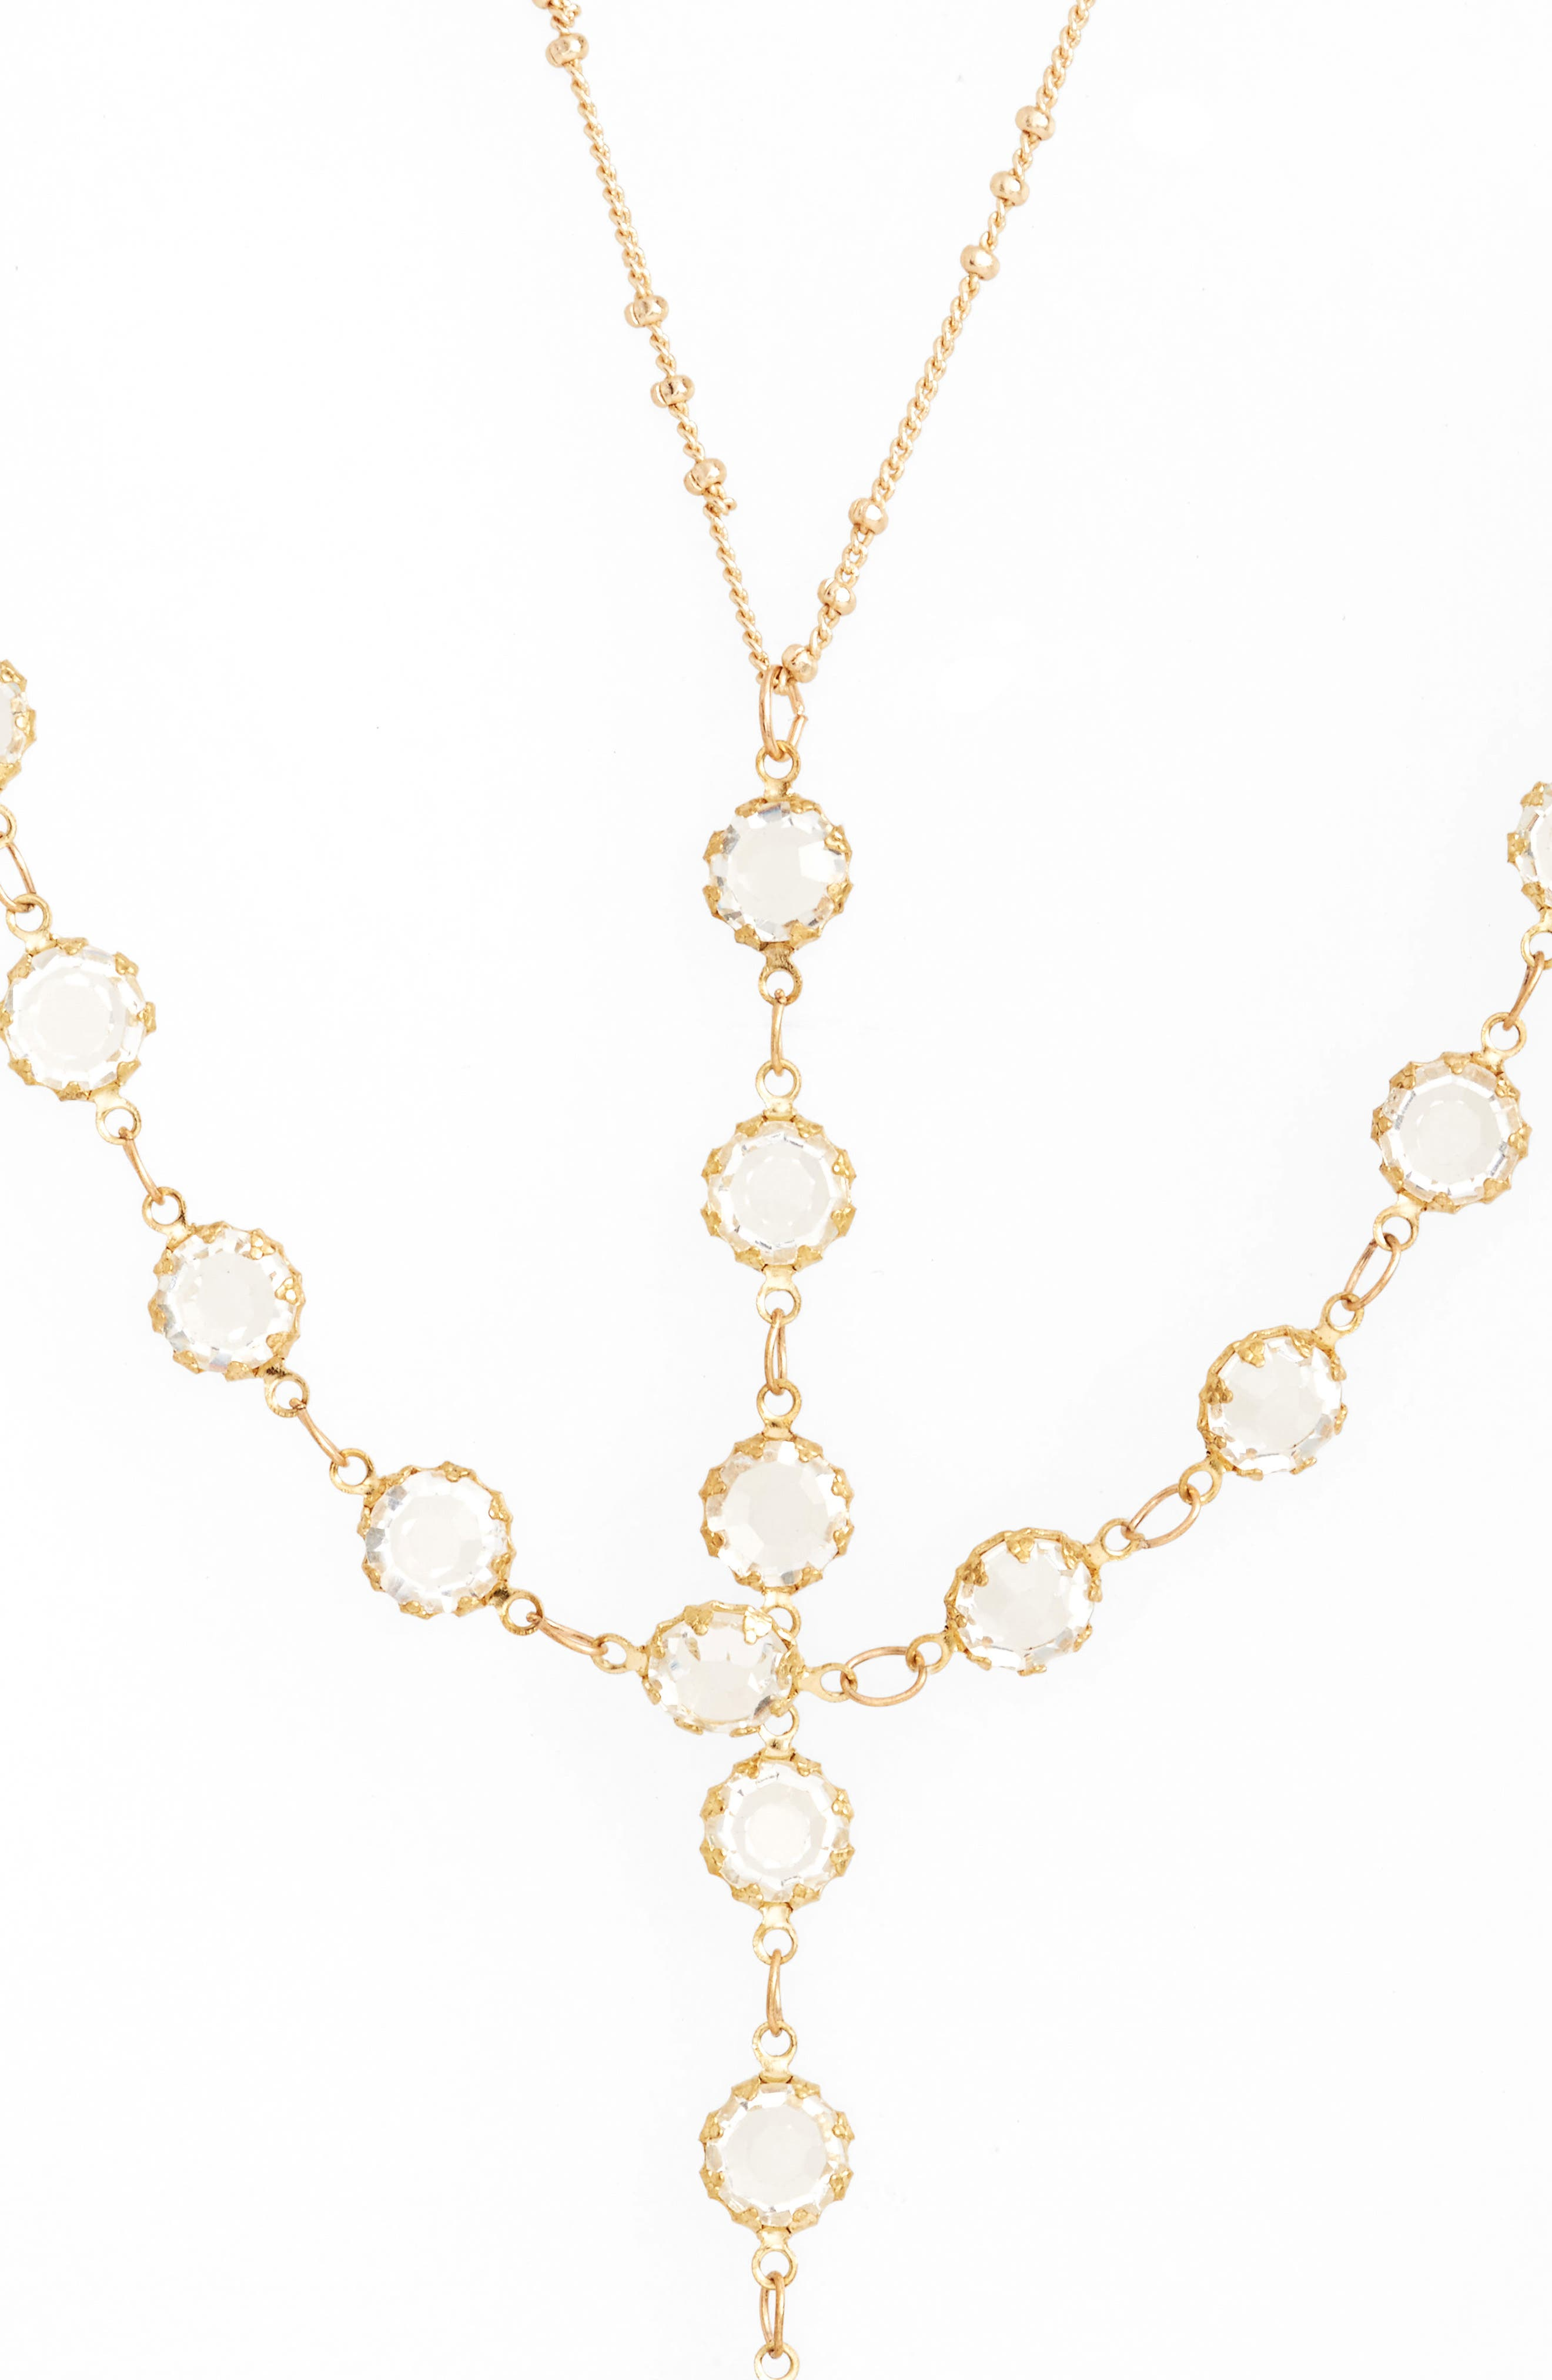 Vintage Crystal Y-Necklace,                             Main thumbnail 1, color,                             Gold/ Crystal